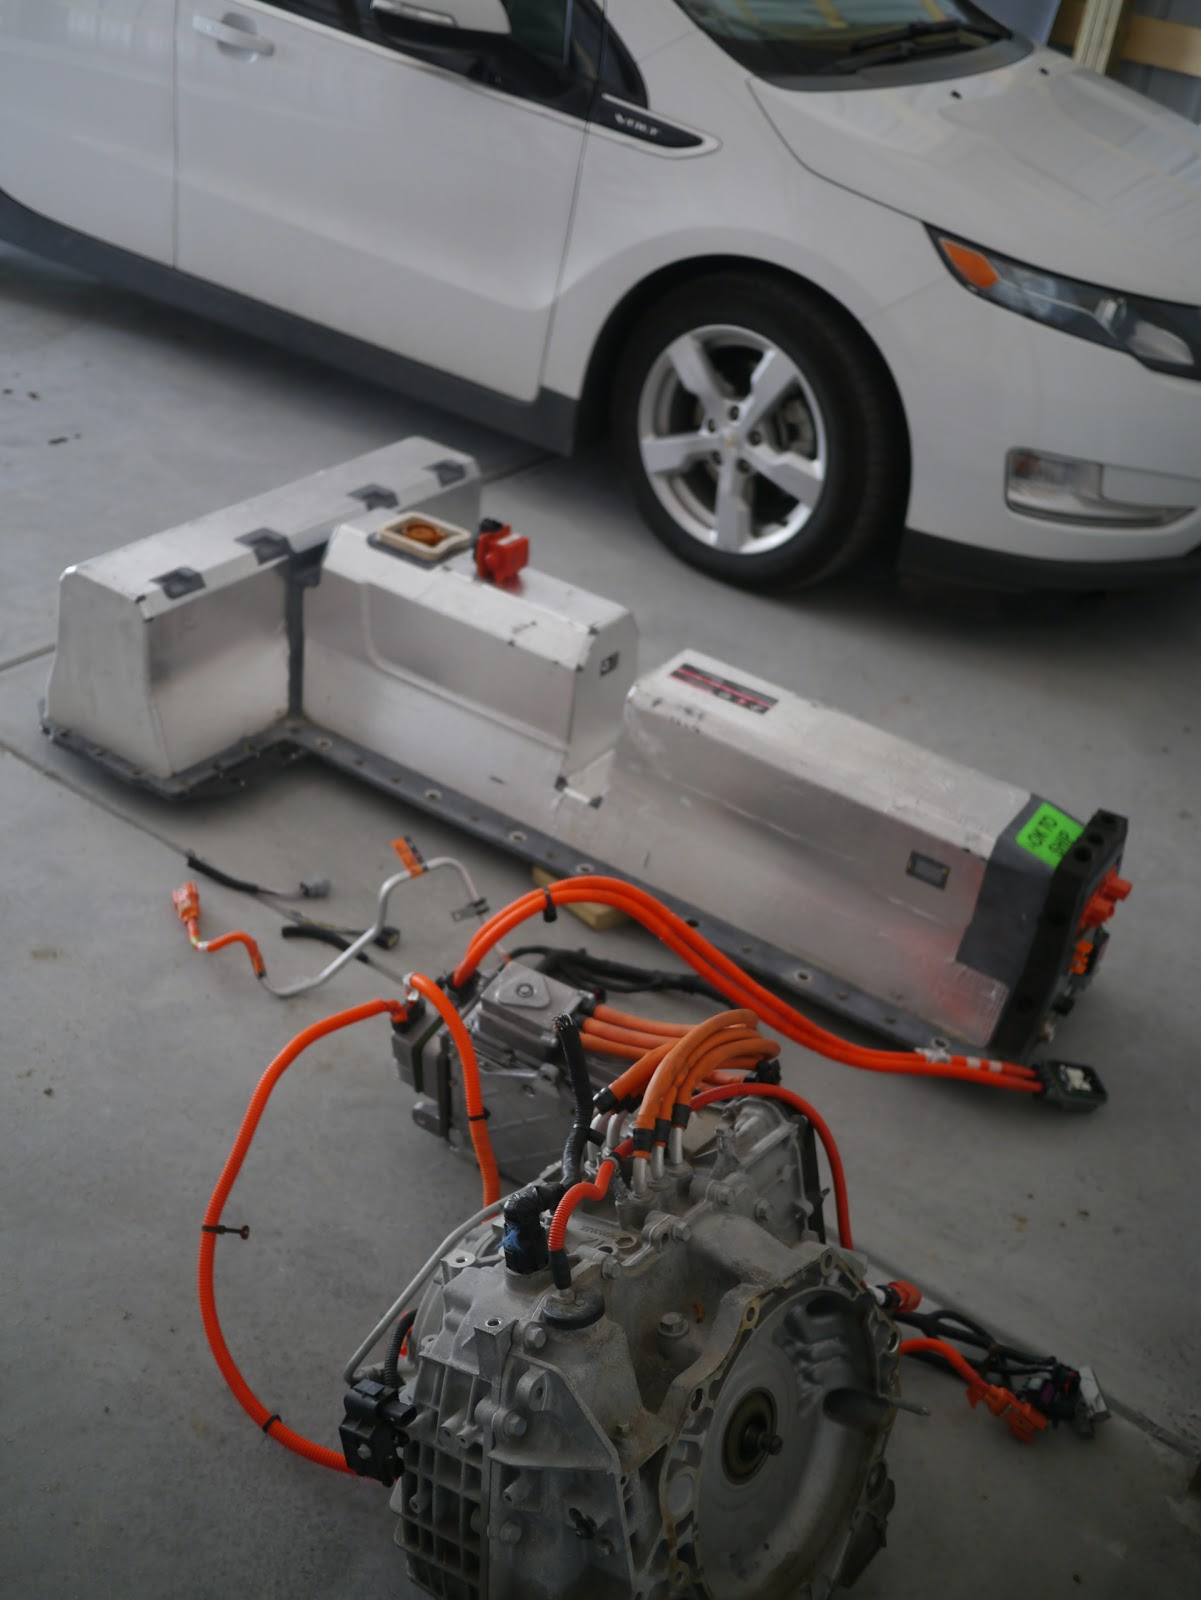 Attempting To Hack A Chevy Volt Drivetrain Diy Electric Car Forums Evs Alarm Wiring Diagram 2 Here Is Picture Of The Sitting Next Our Daily Driver 30000 Ev Miles And Going Strong